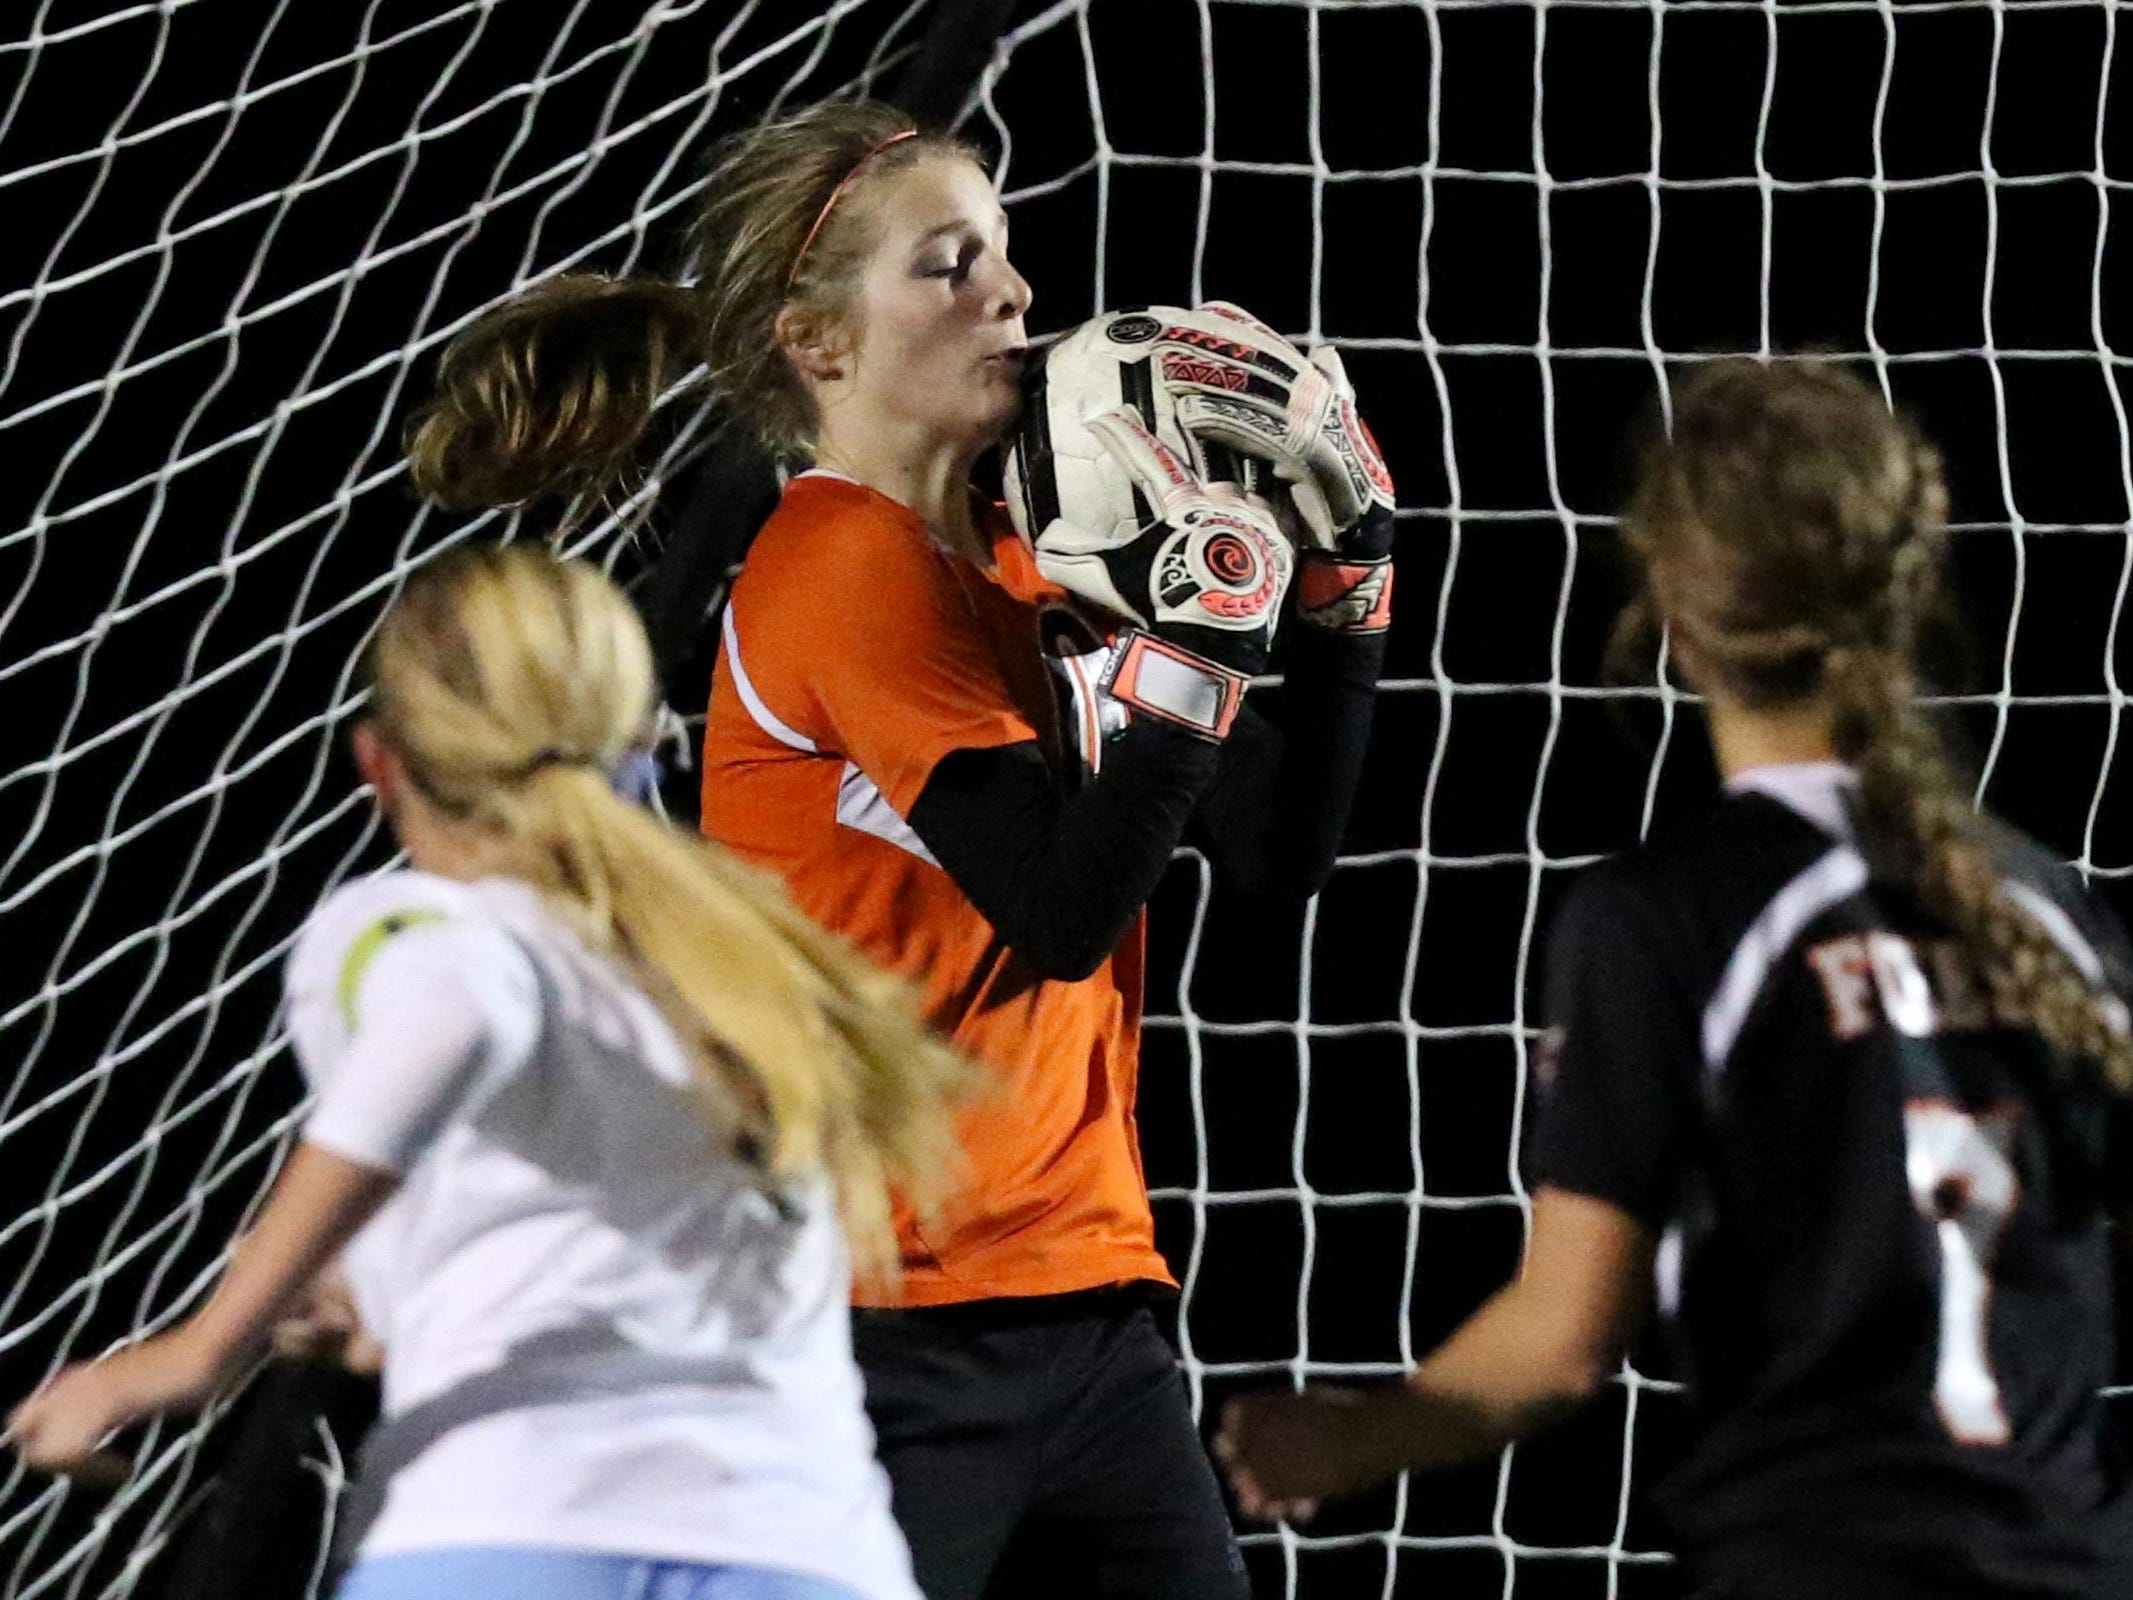 Silverton's Kylie Lulich (0) makes a save in the Silverton vs. Corvallis girl's soccer Mid-Willamette Conference championship game at Corvallis High School on Tuesday, Oct. 27, 2015. Corvallis won the championship 2-1.